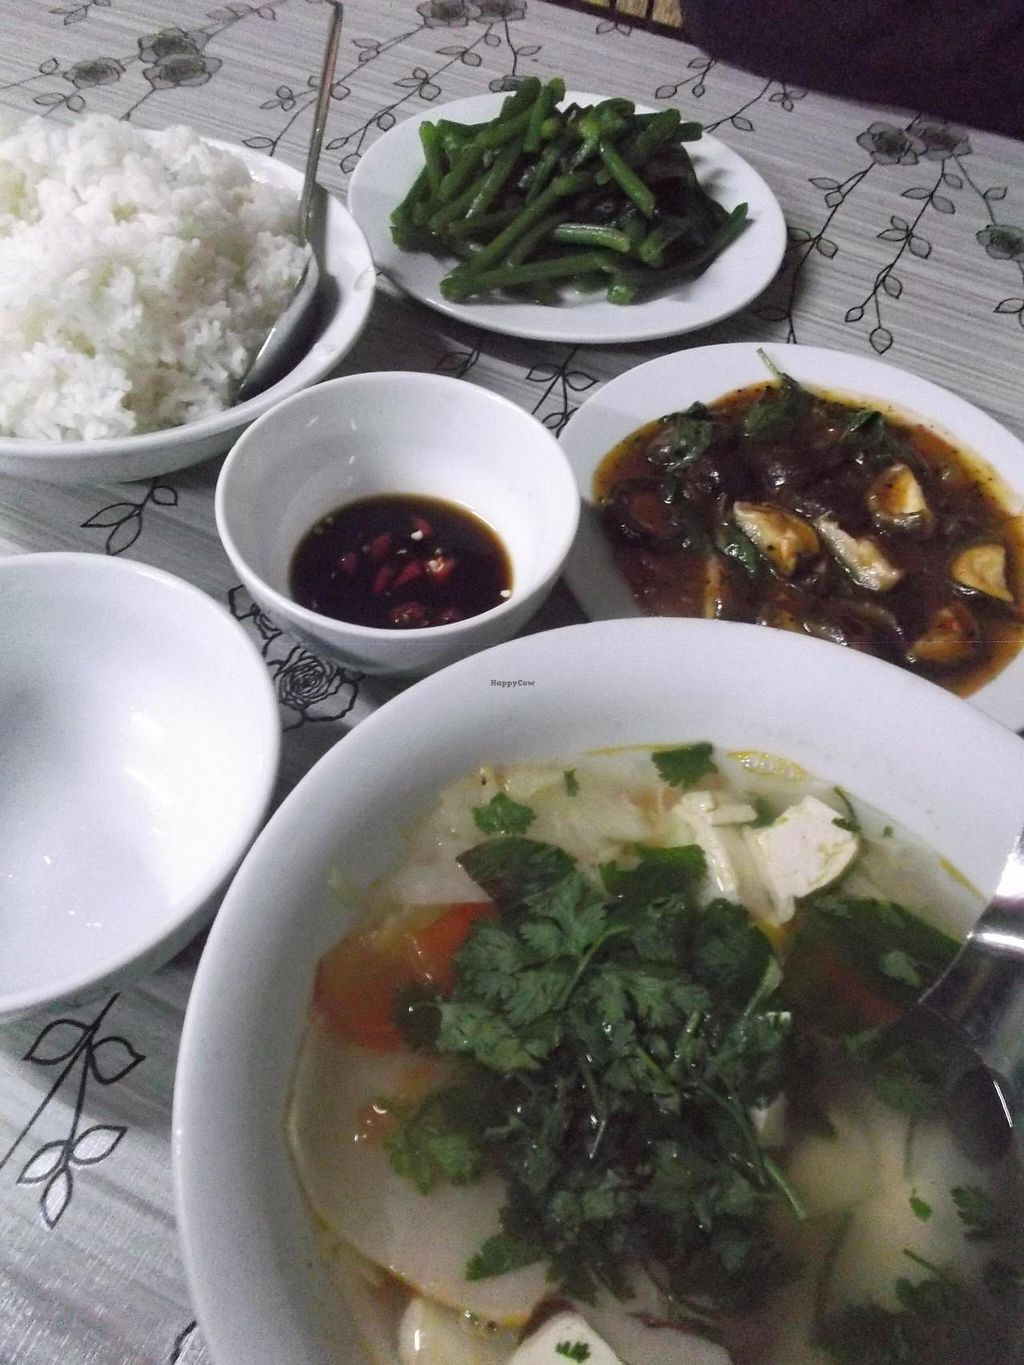 "Photo of Bo De Quan  by <a href=""/members/profile/mfalgas"">mfalgas</a> <br/>Rice, French beans, soup and mushrooms in sauce <br/> December 21, 2014  - <a href='/contact/abuse/image/27266/88405'>Report</a>"